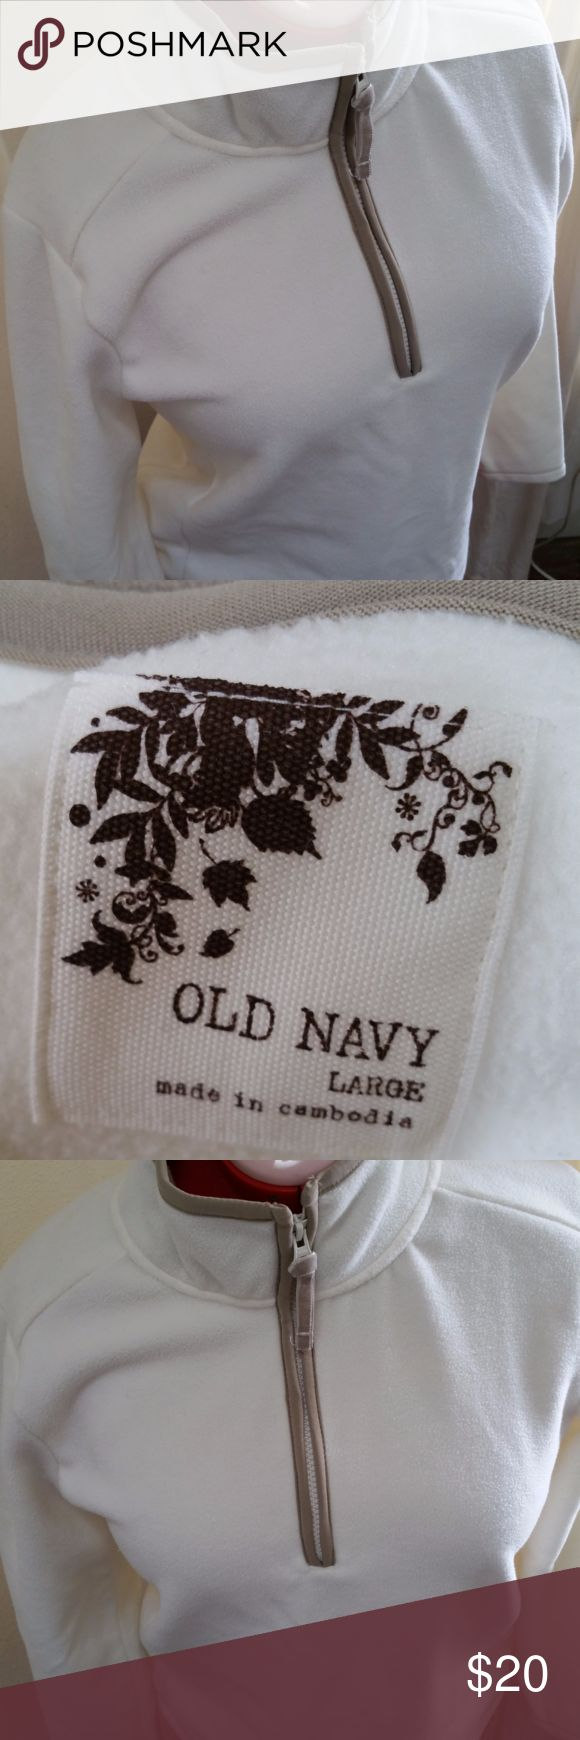 Old Navy Fleece Pullover White & tan fleece pullover with front 1/2 zipper. NWOT. Old Navy Tops Sweatshirts & Hoodies